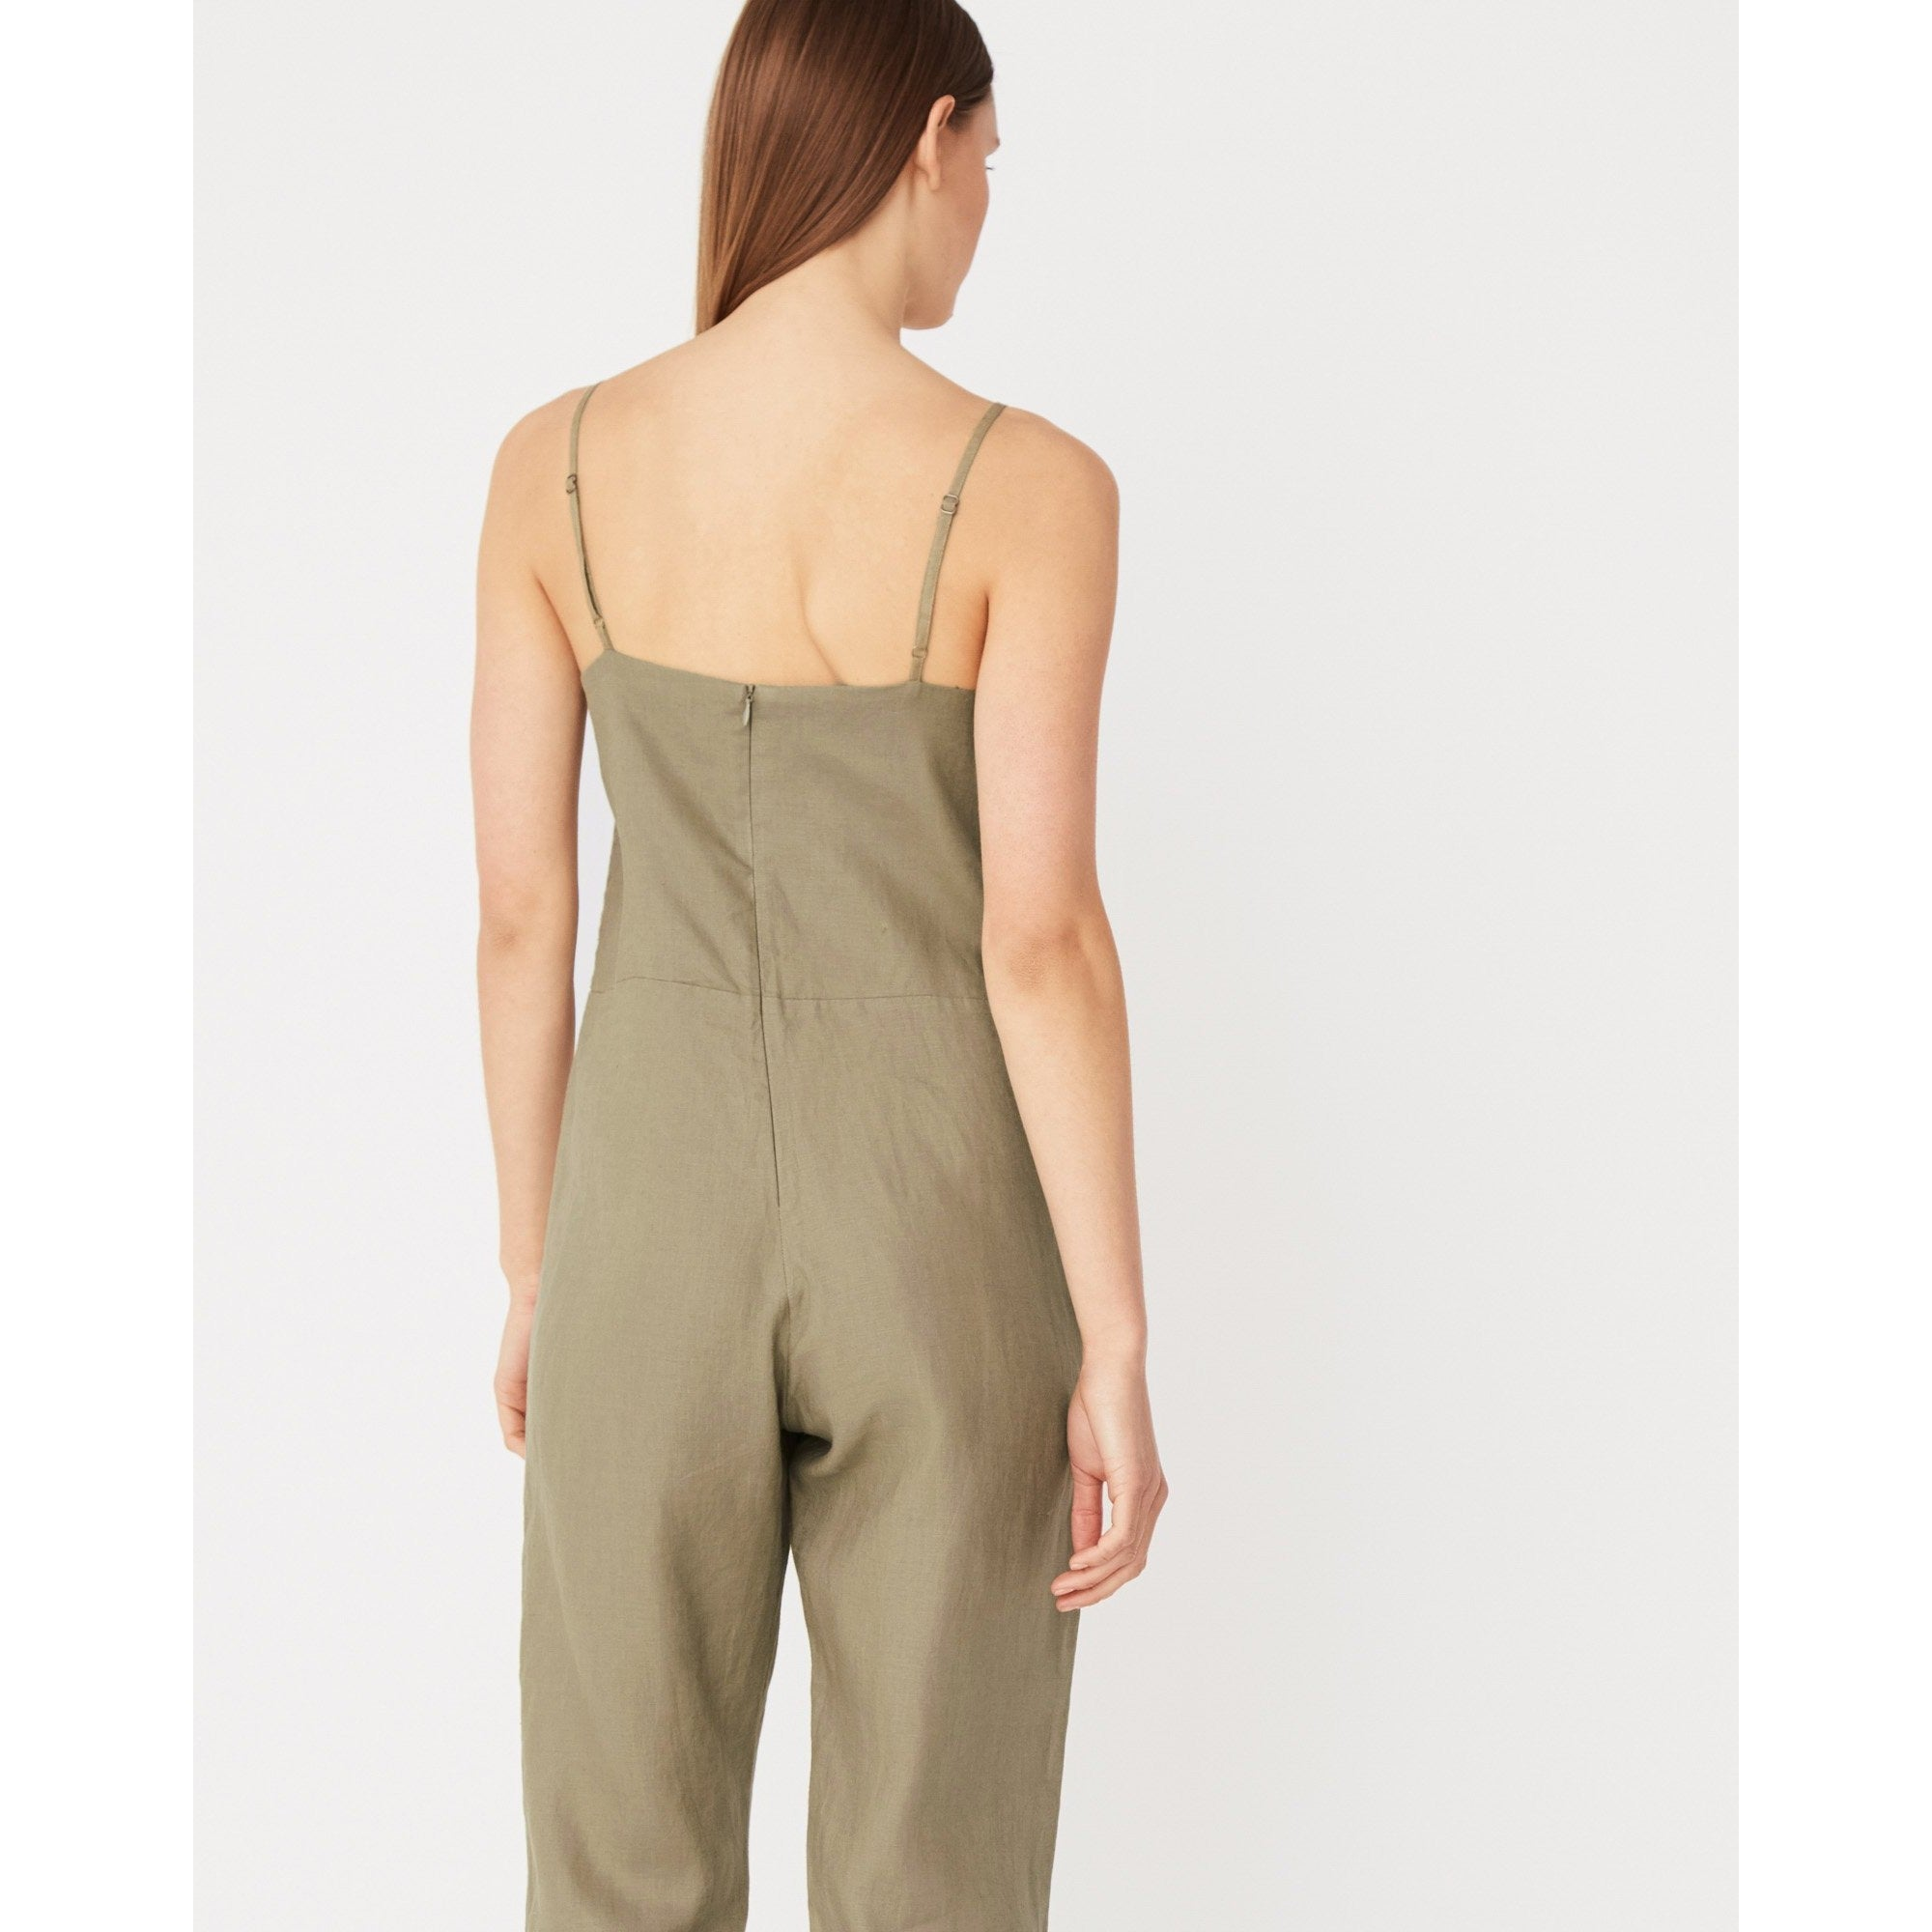 Assembly Label - linen slip jumpsuit olive